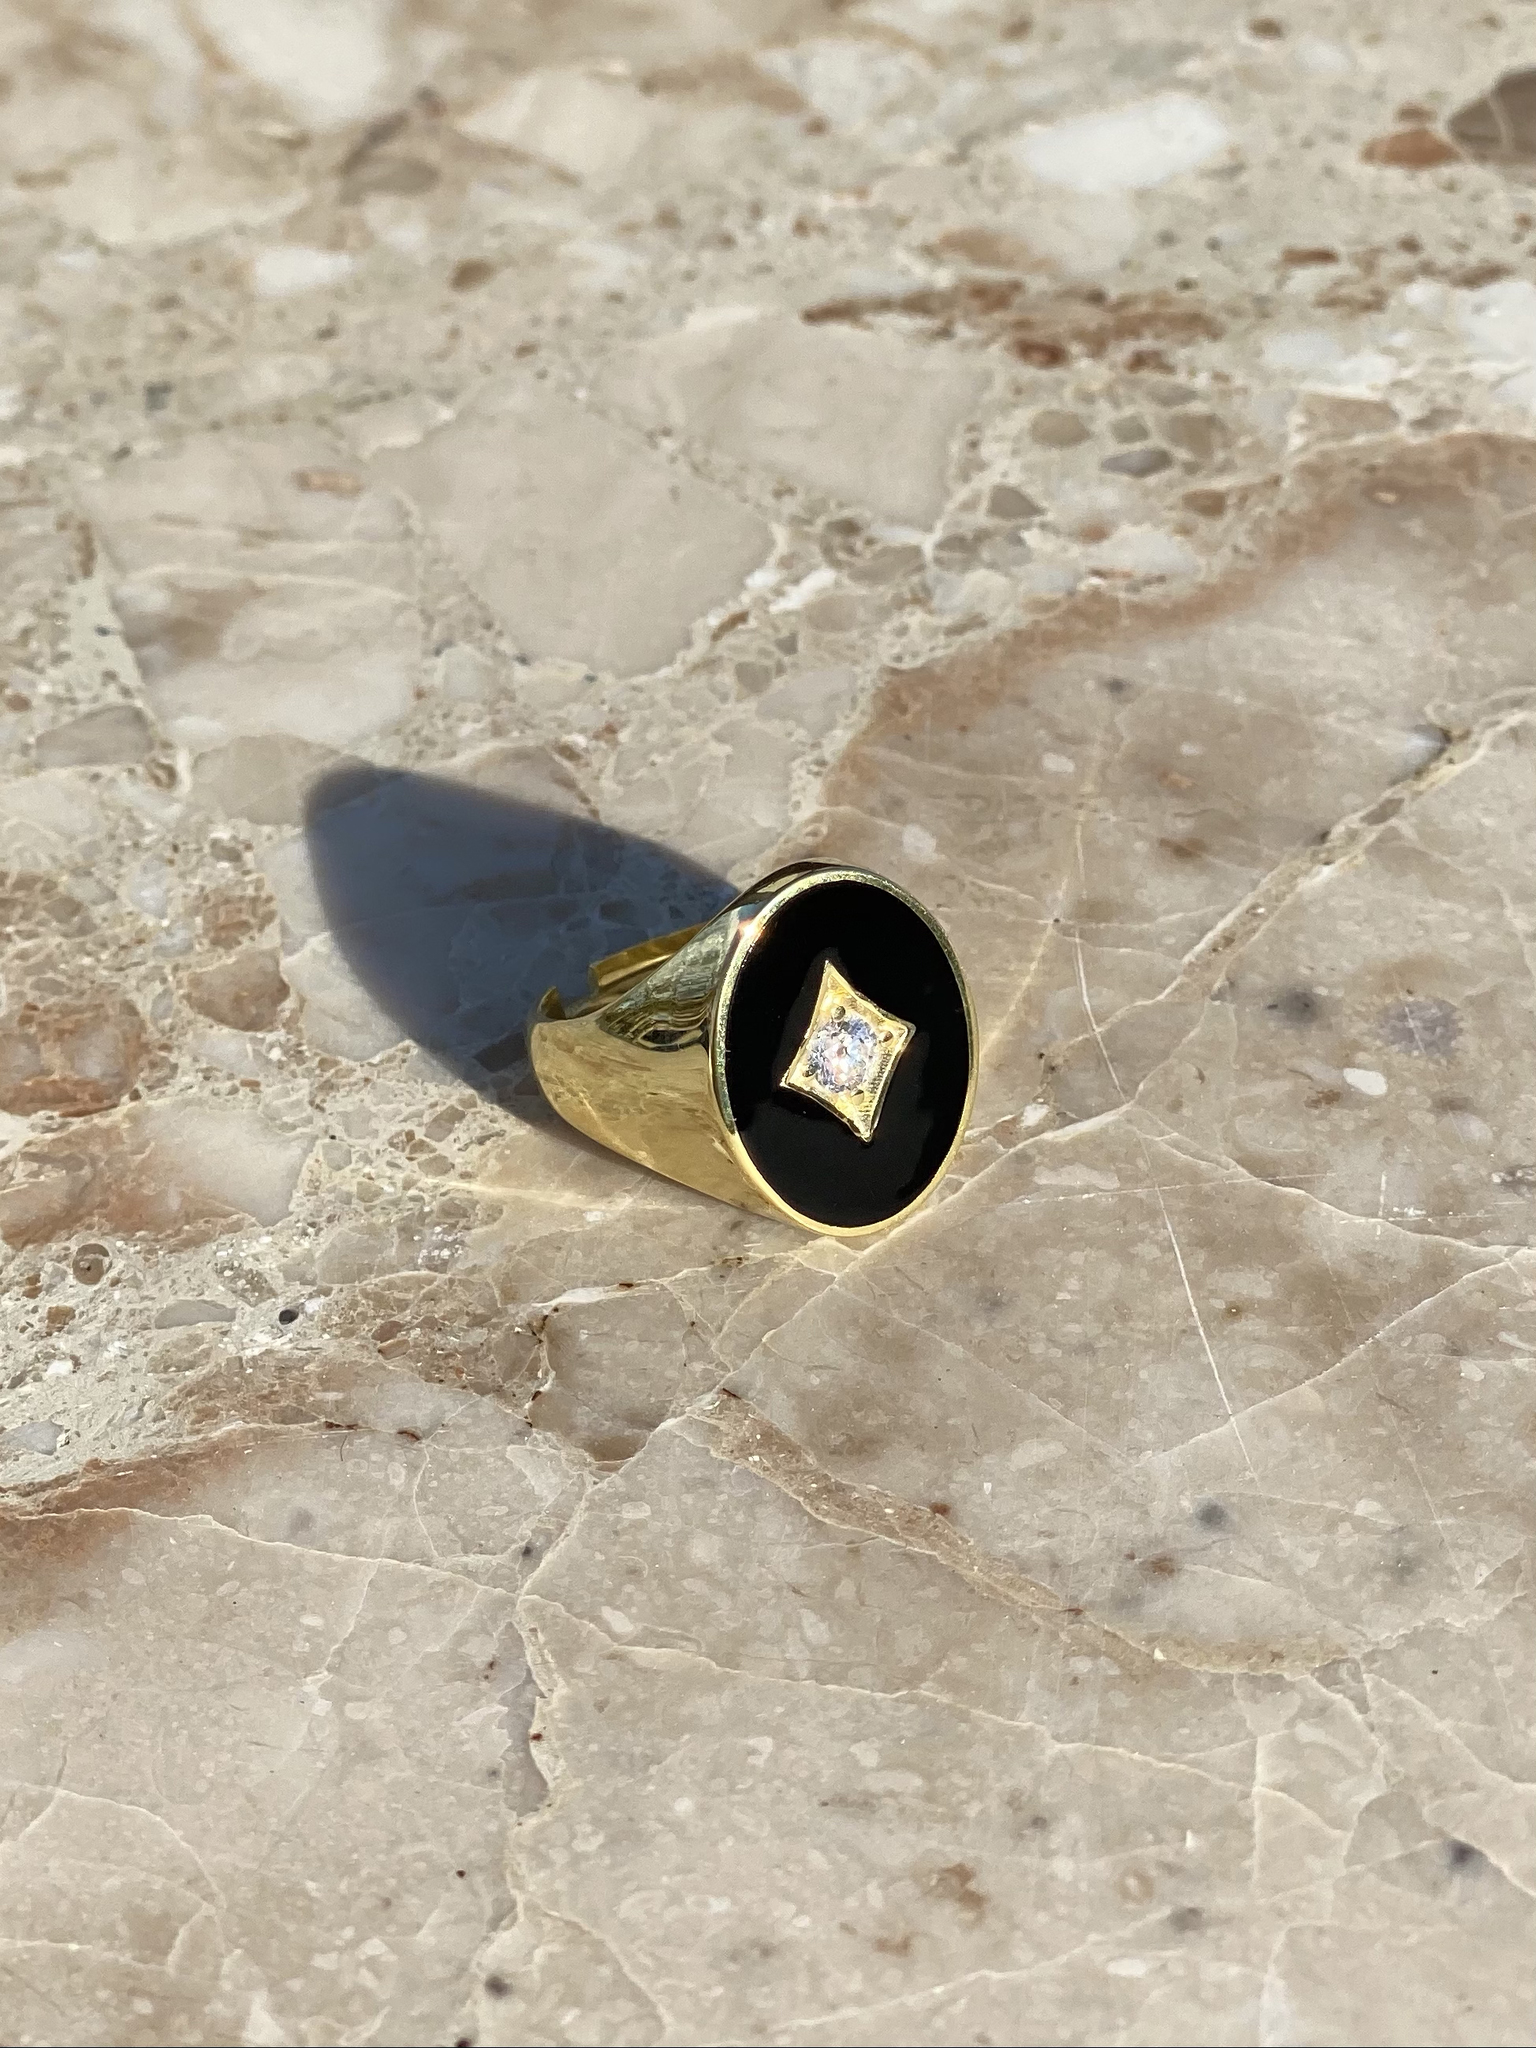 Signet ring in gold plated silver and black enamel